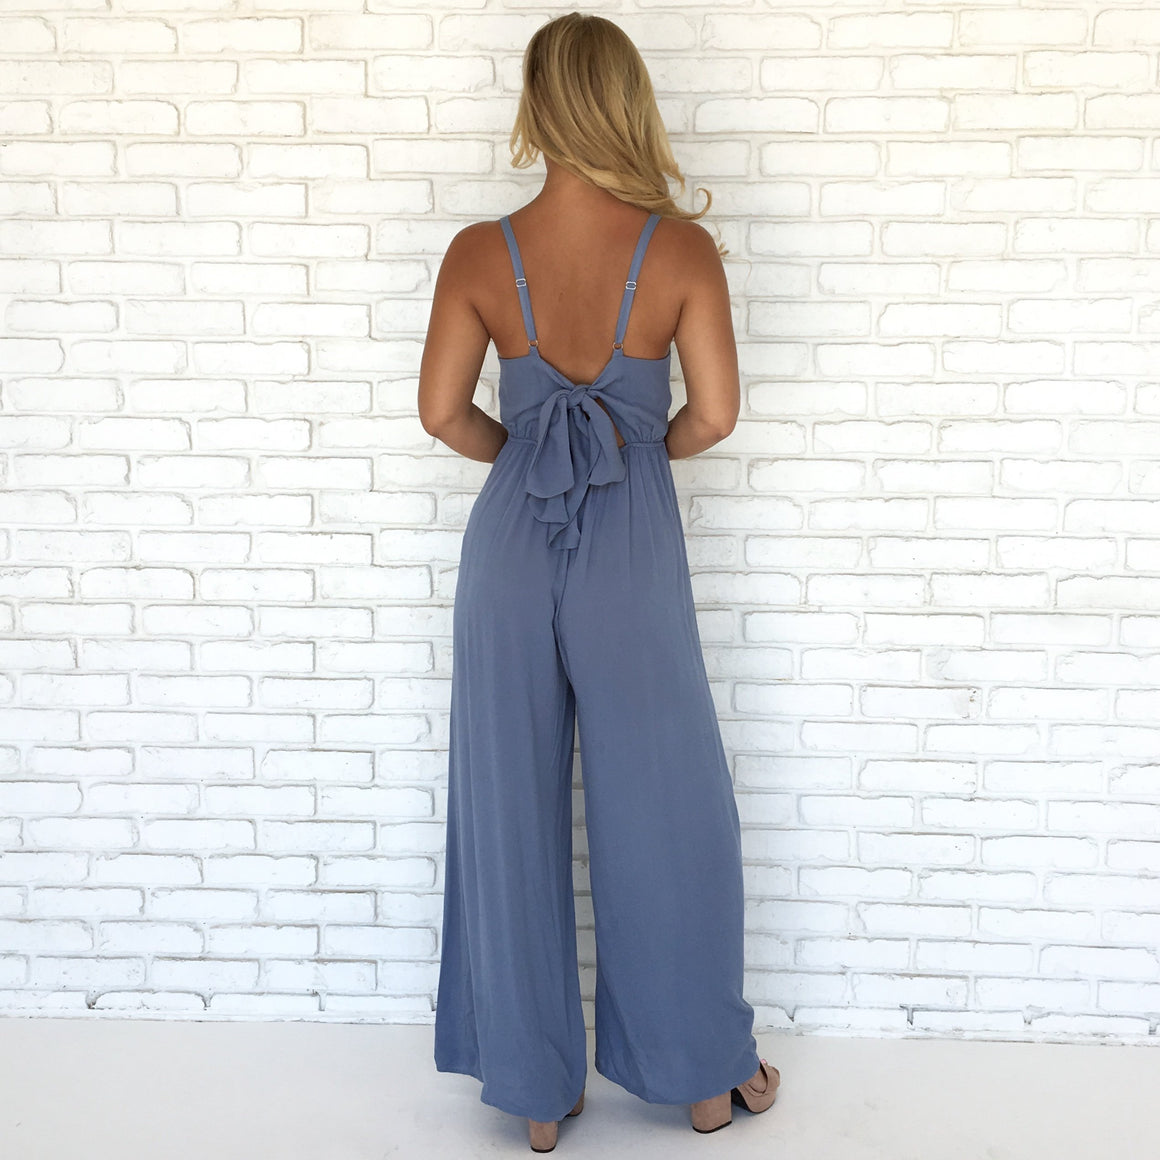 All About You Jumpsuit in Blue